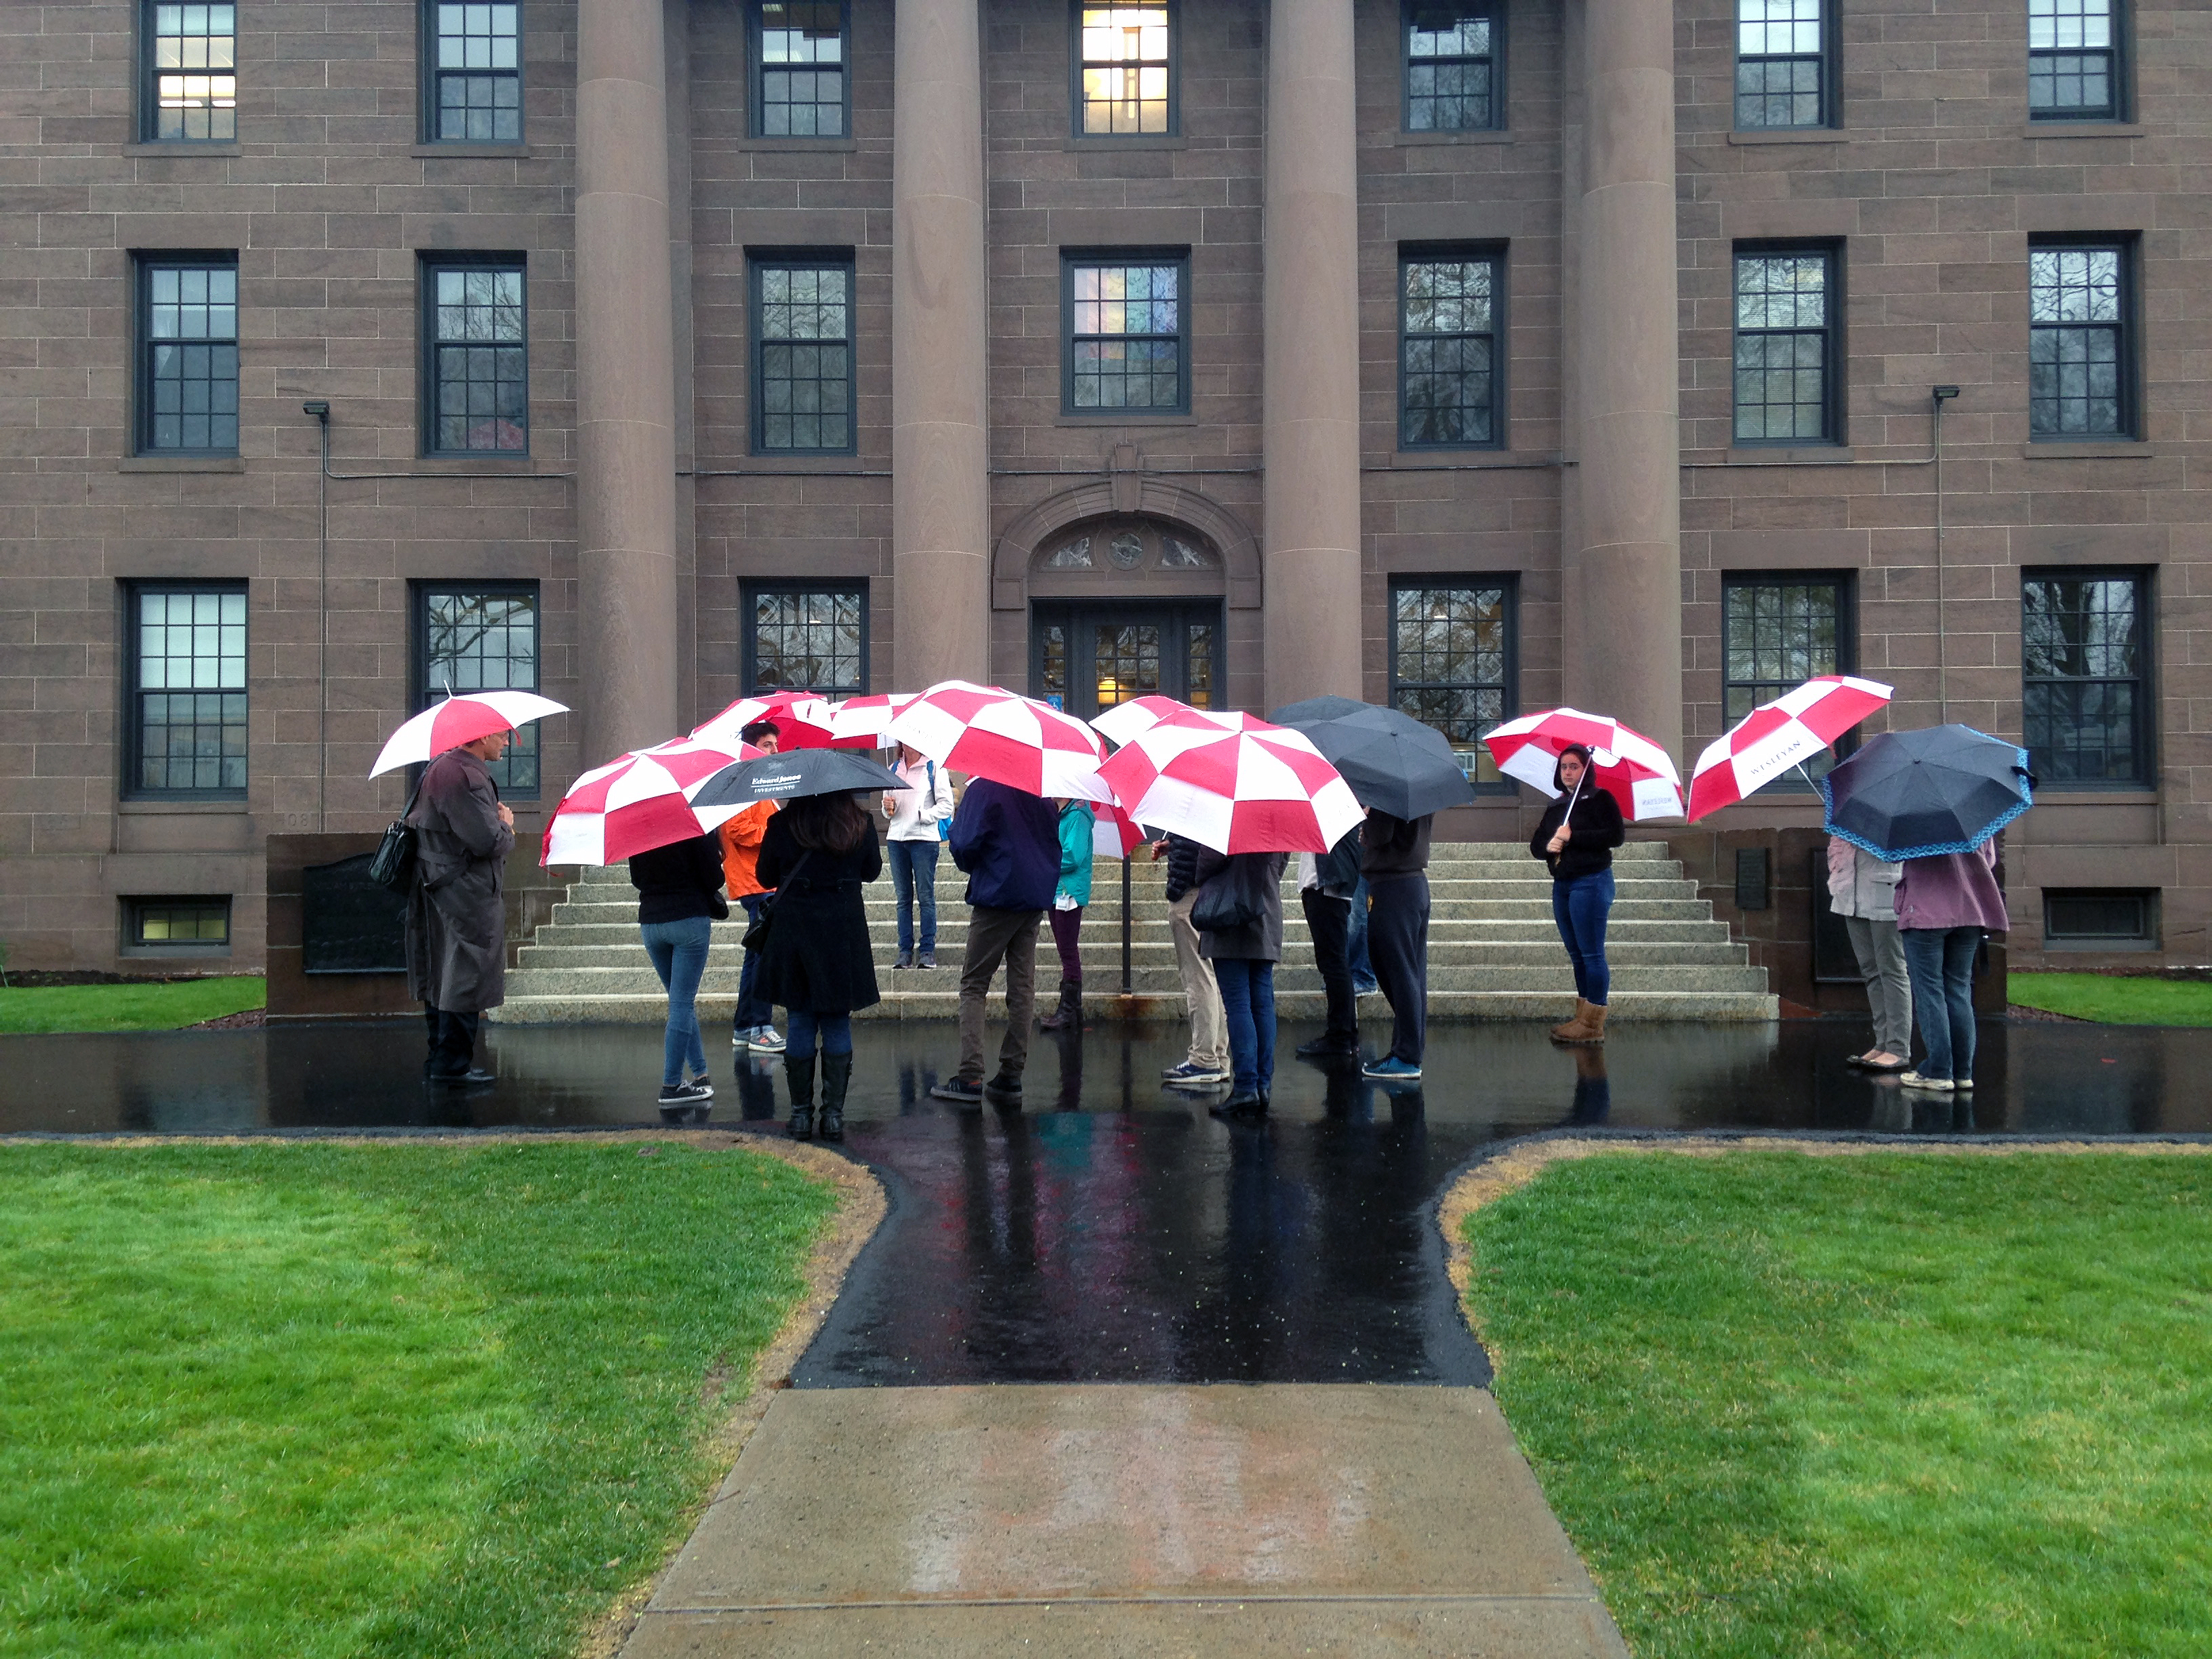 "In a moment of serendipity, Wesleyan President Michael Roth found his walk to work coinciding with the path of an Admission tour group. With his red umbrella aloft, he walked into the crowd of prospective parents and students near the steps of North College. He listened for a while before blowing his cover by asking ""Does anyone have any questions for the president this morning?""   Members of the group captured the moment on their smartphones."